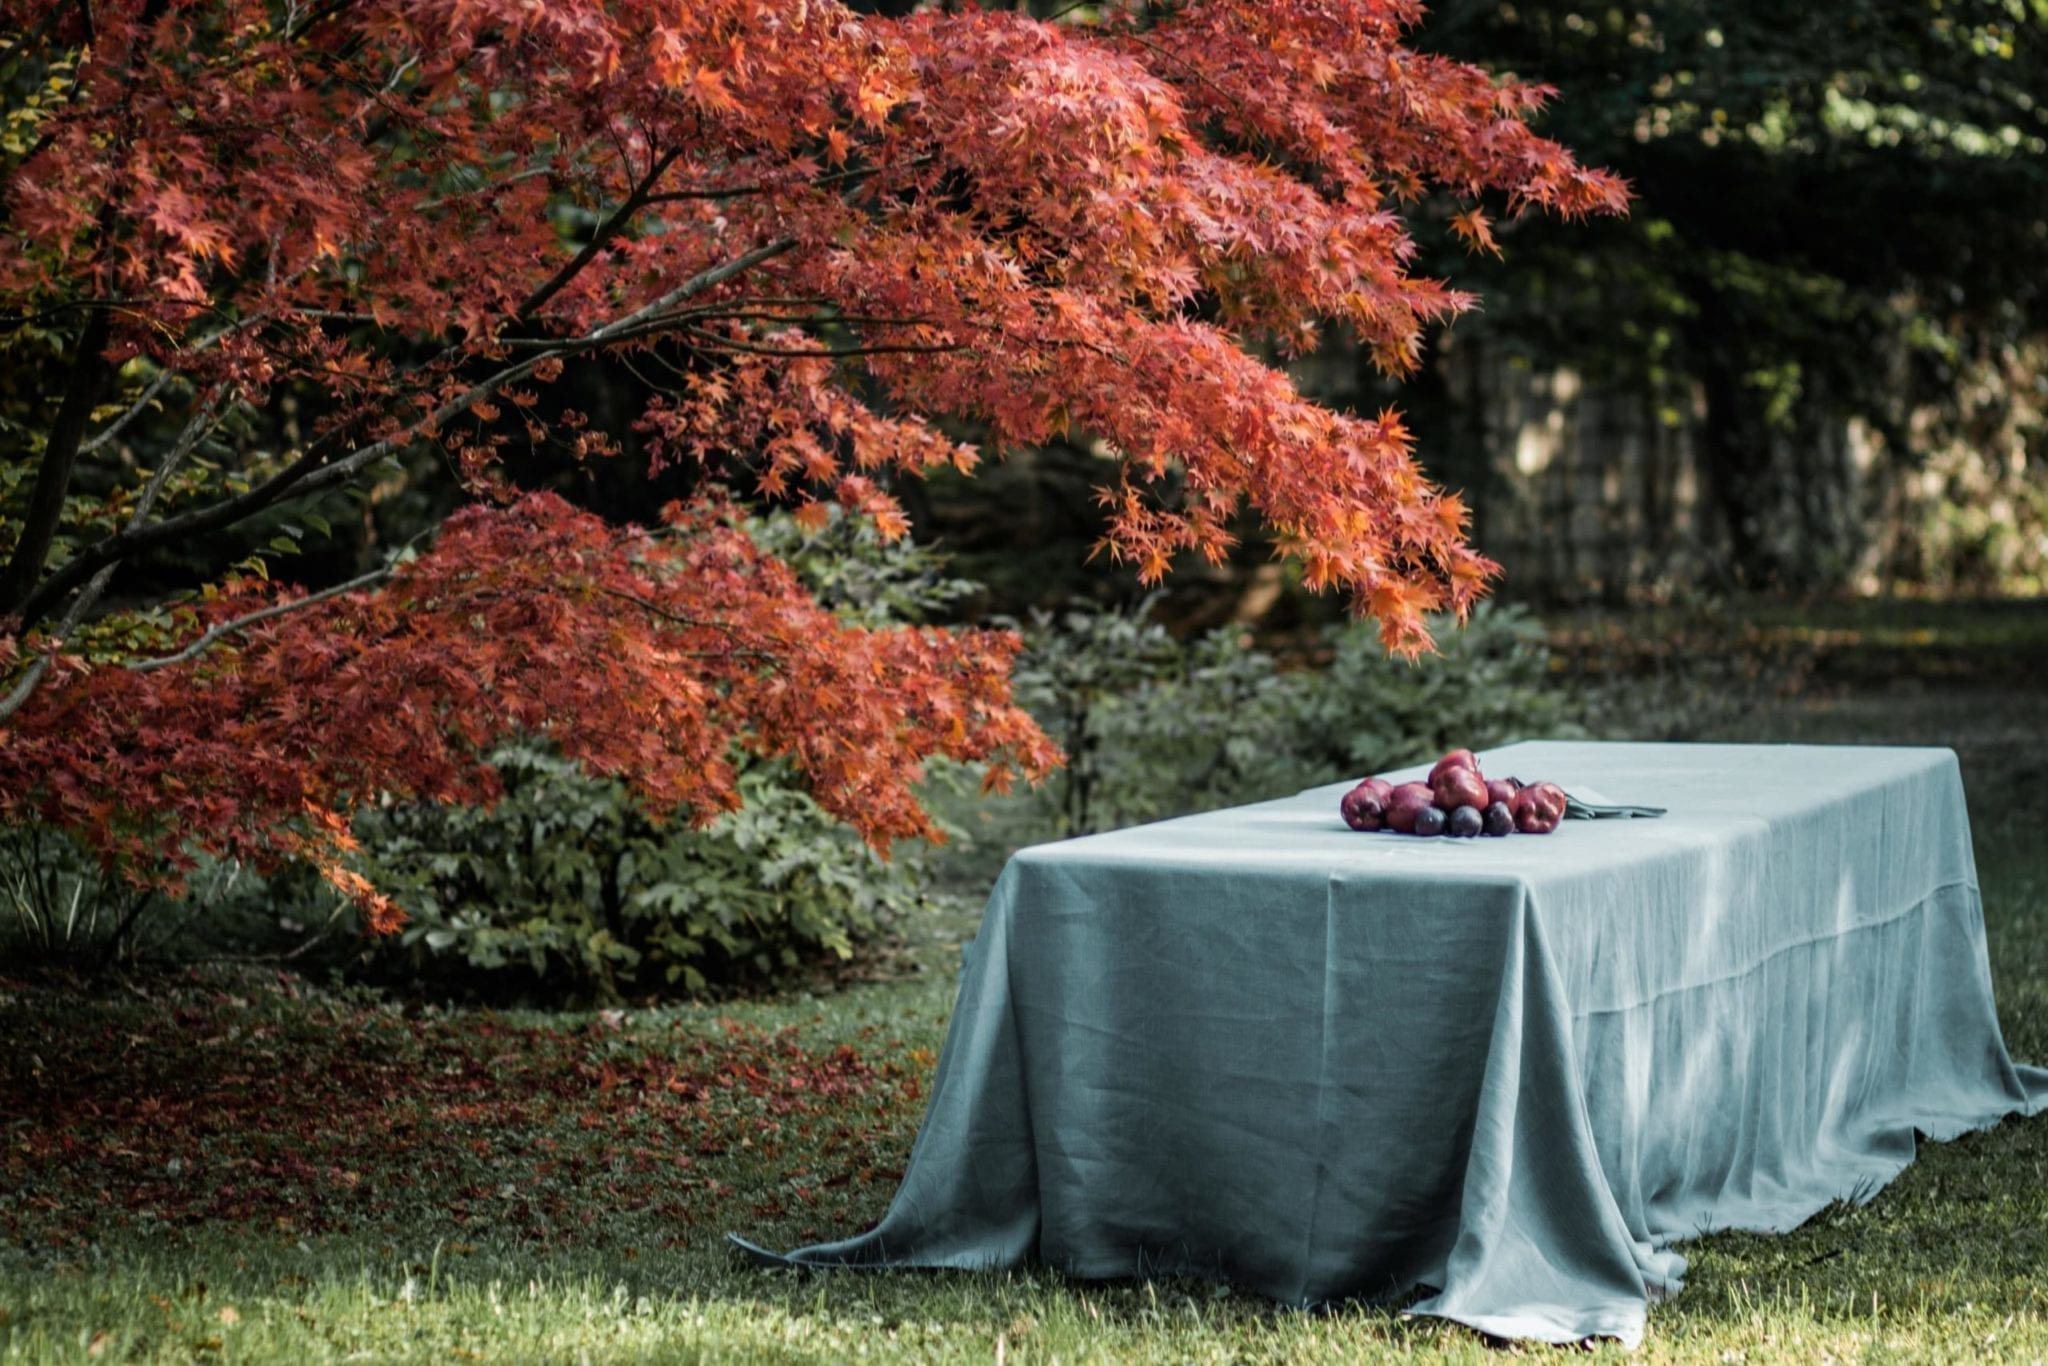 Tablecloth - Once Milano